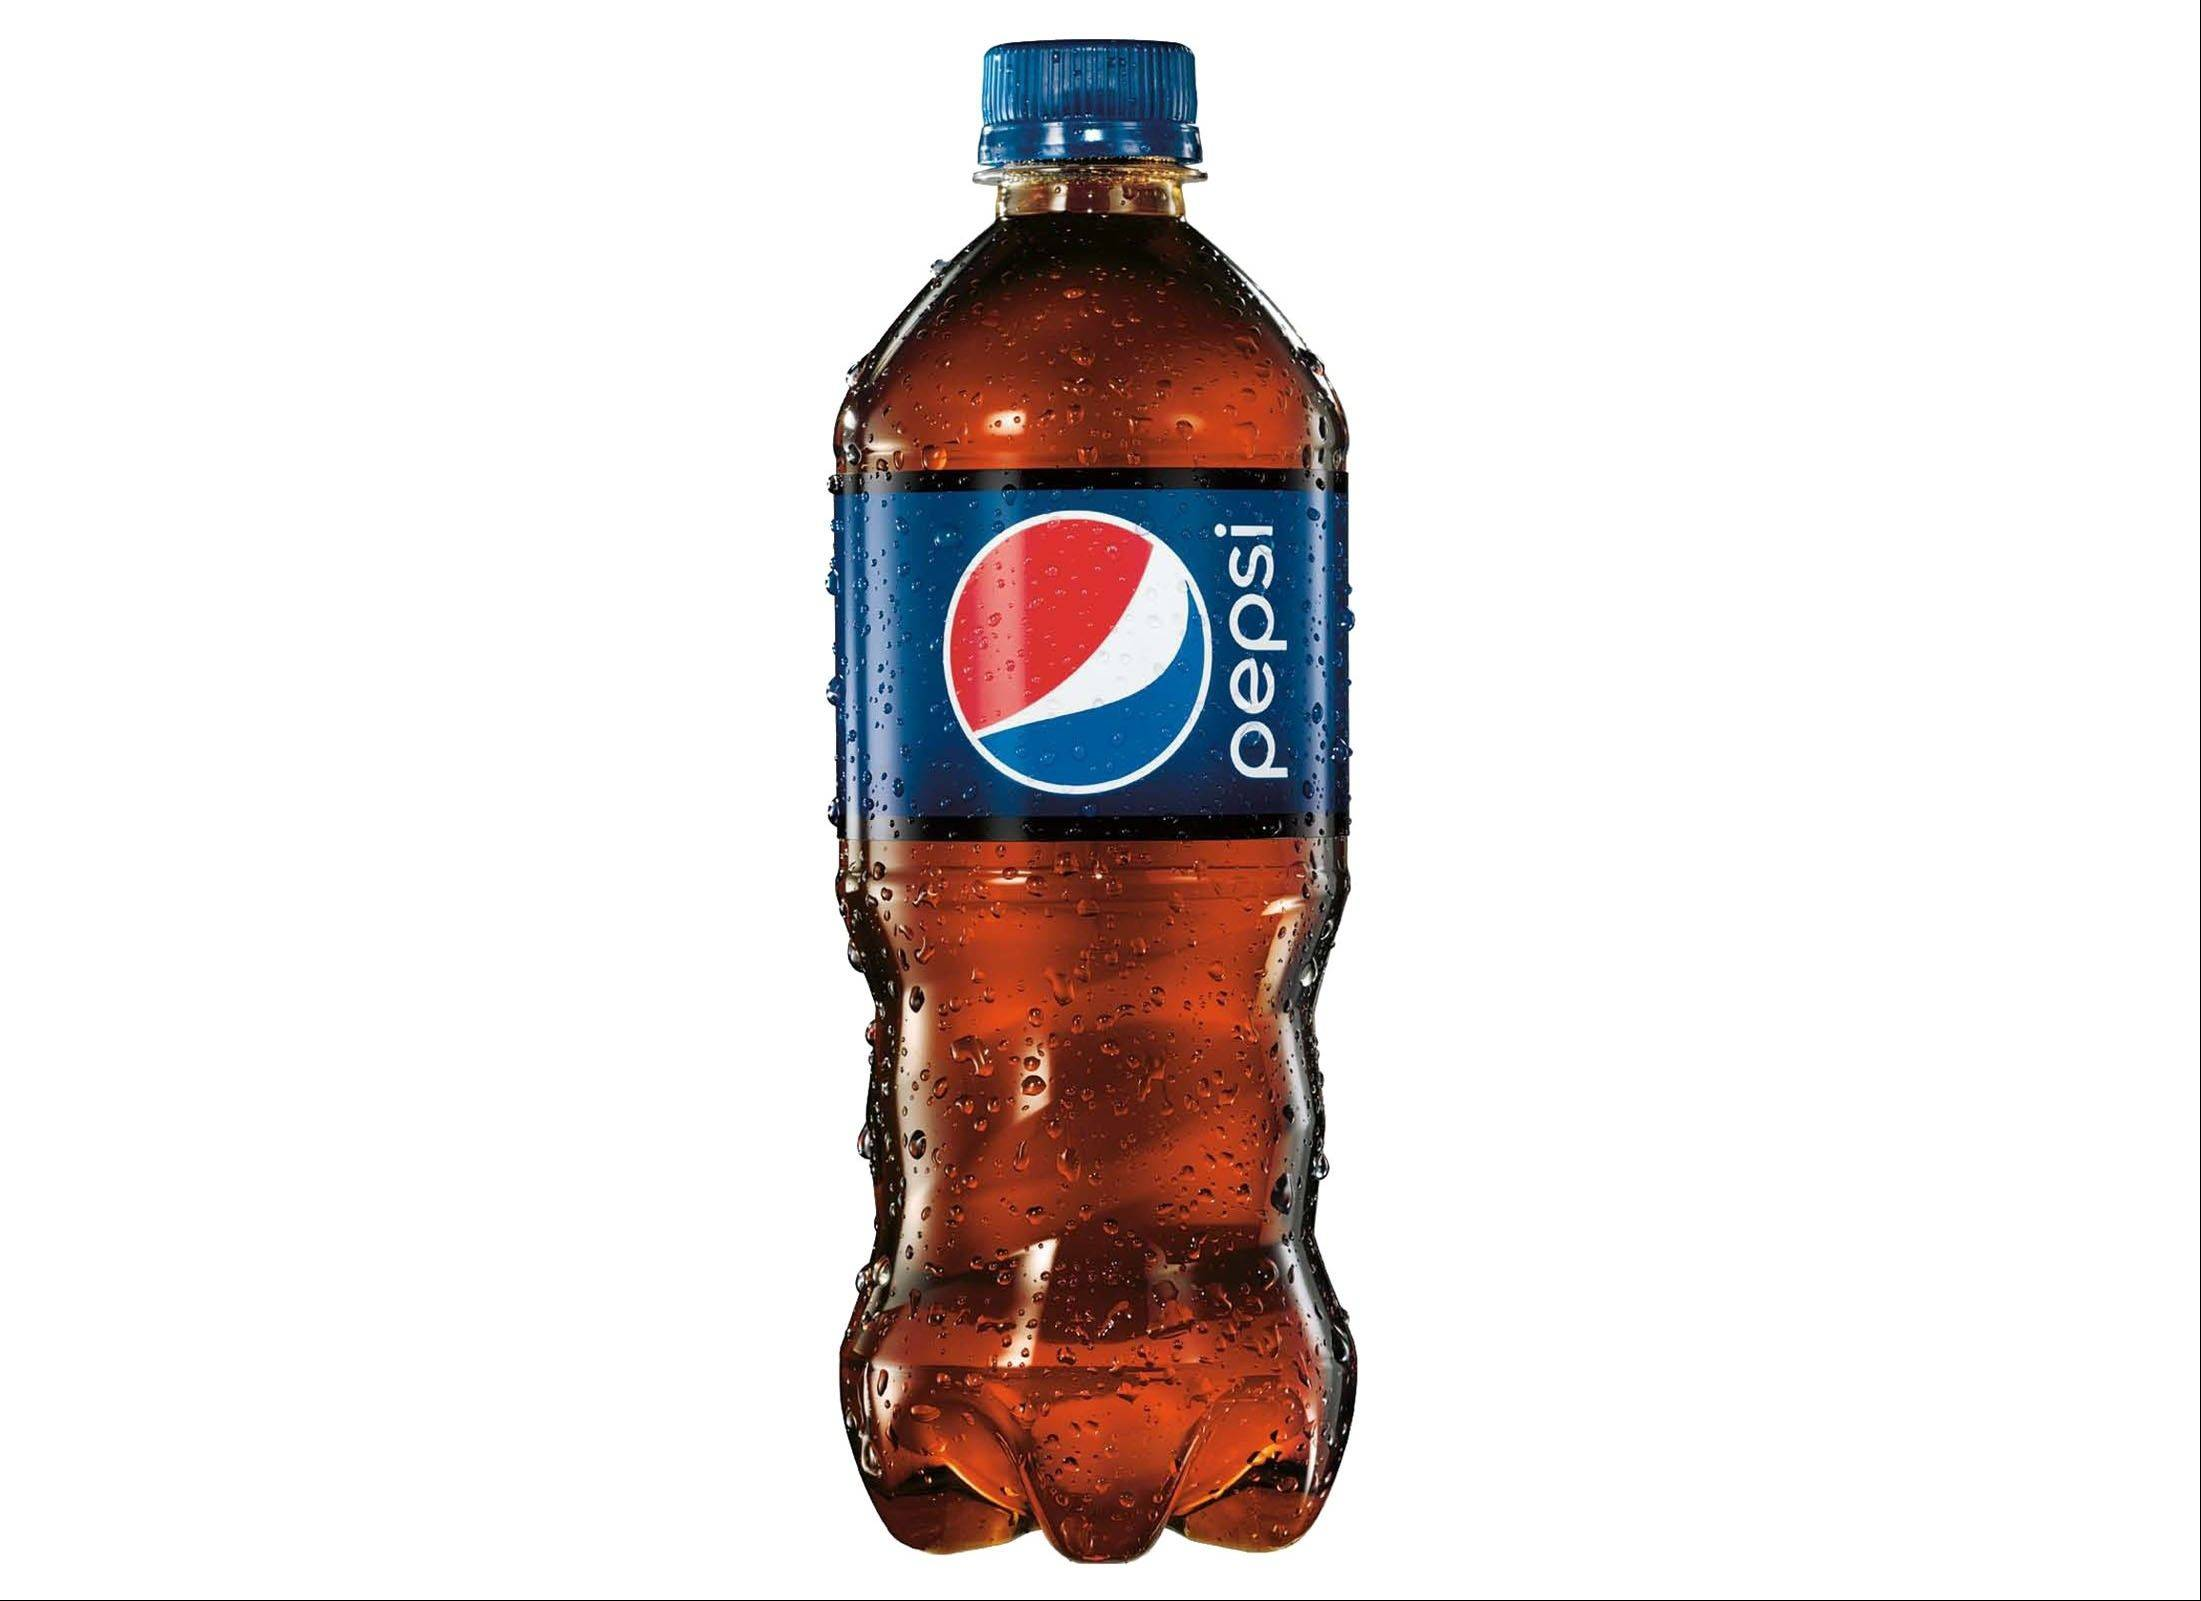 The new 20-ounce Pepsi bottle has a contoured bottom half that appears easier for holding, and the wraparound label is shorter so that more of the drink is exposed.